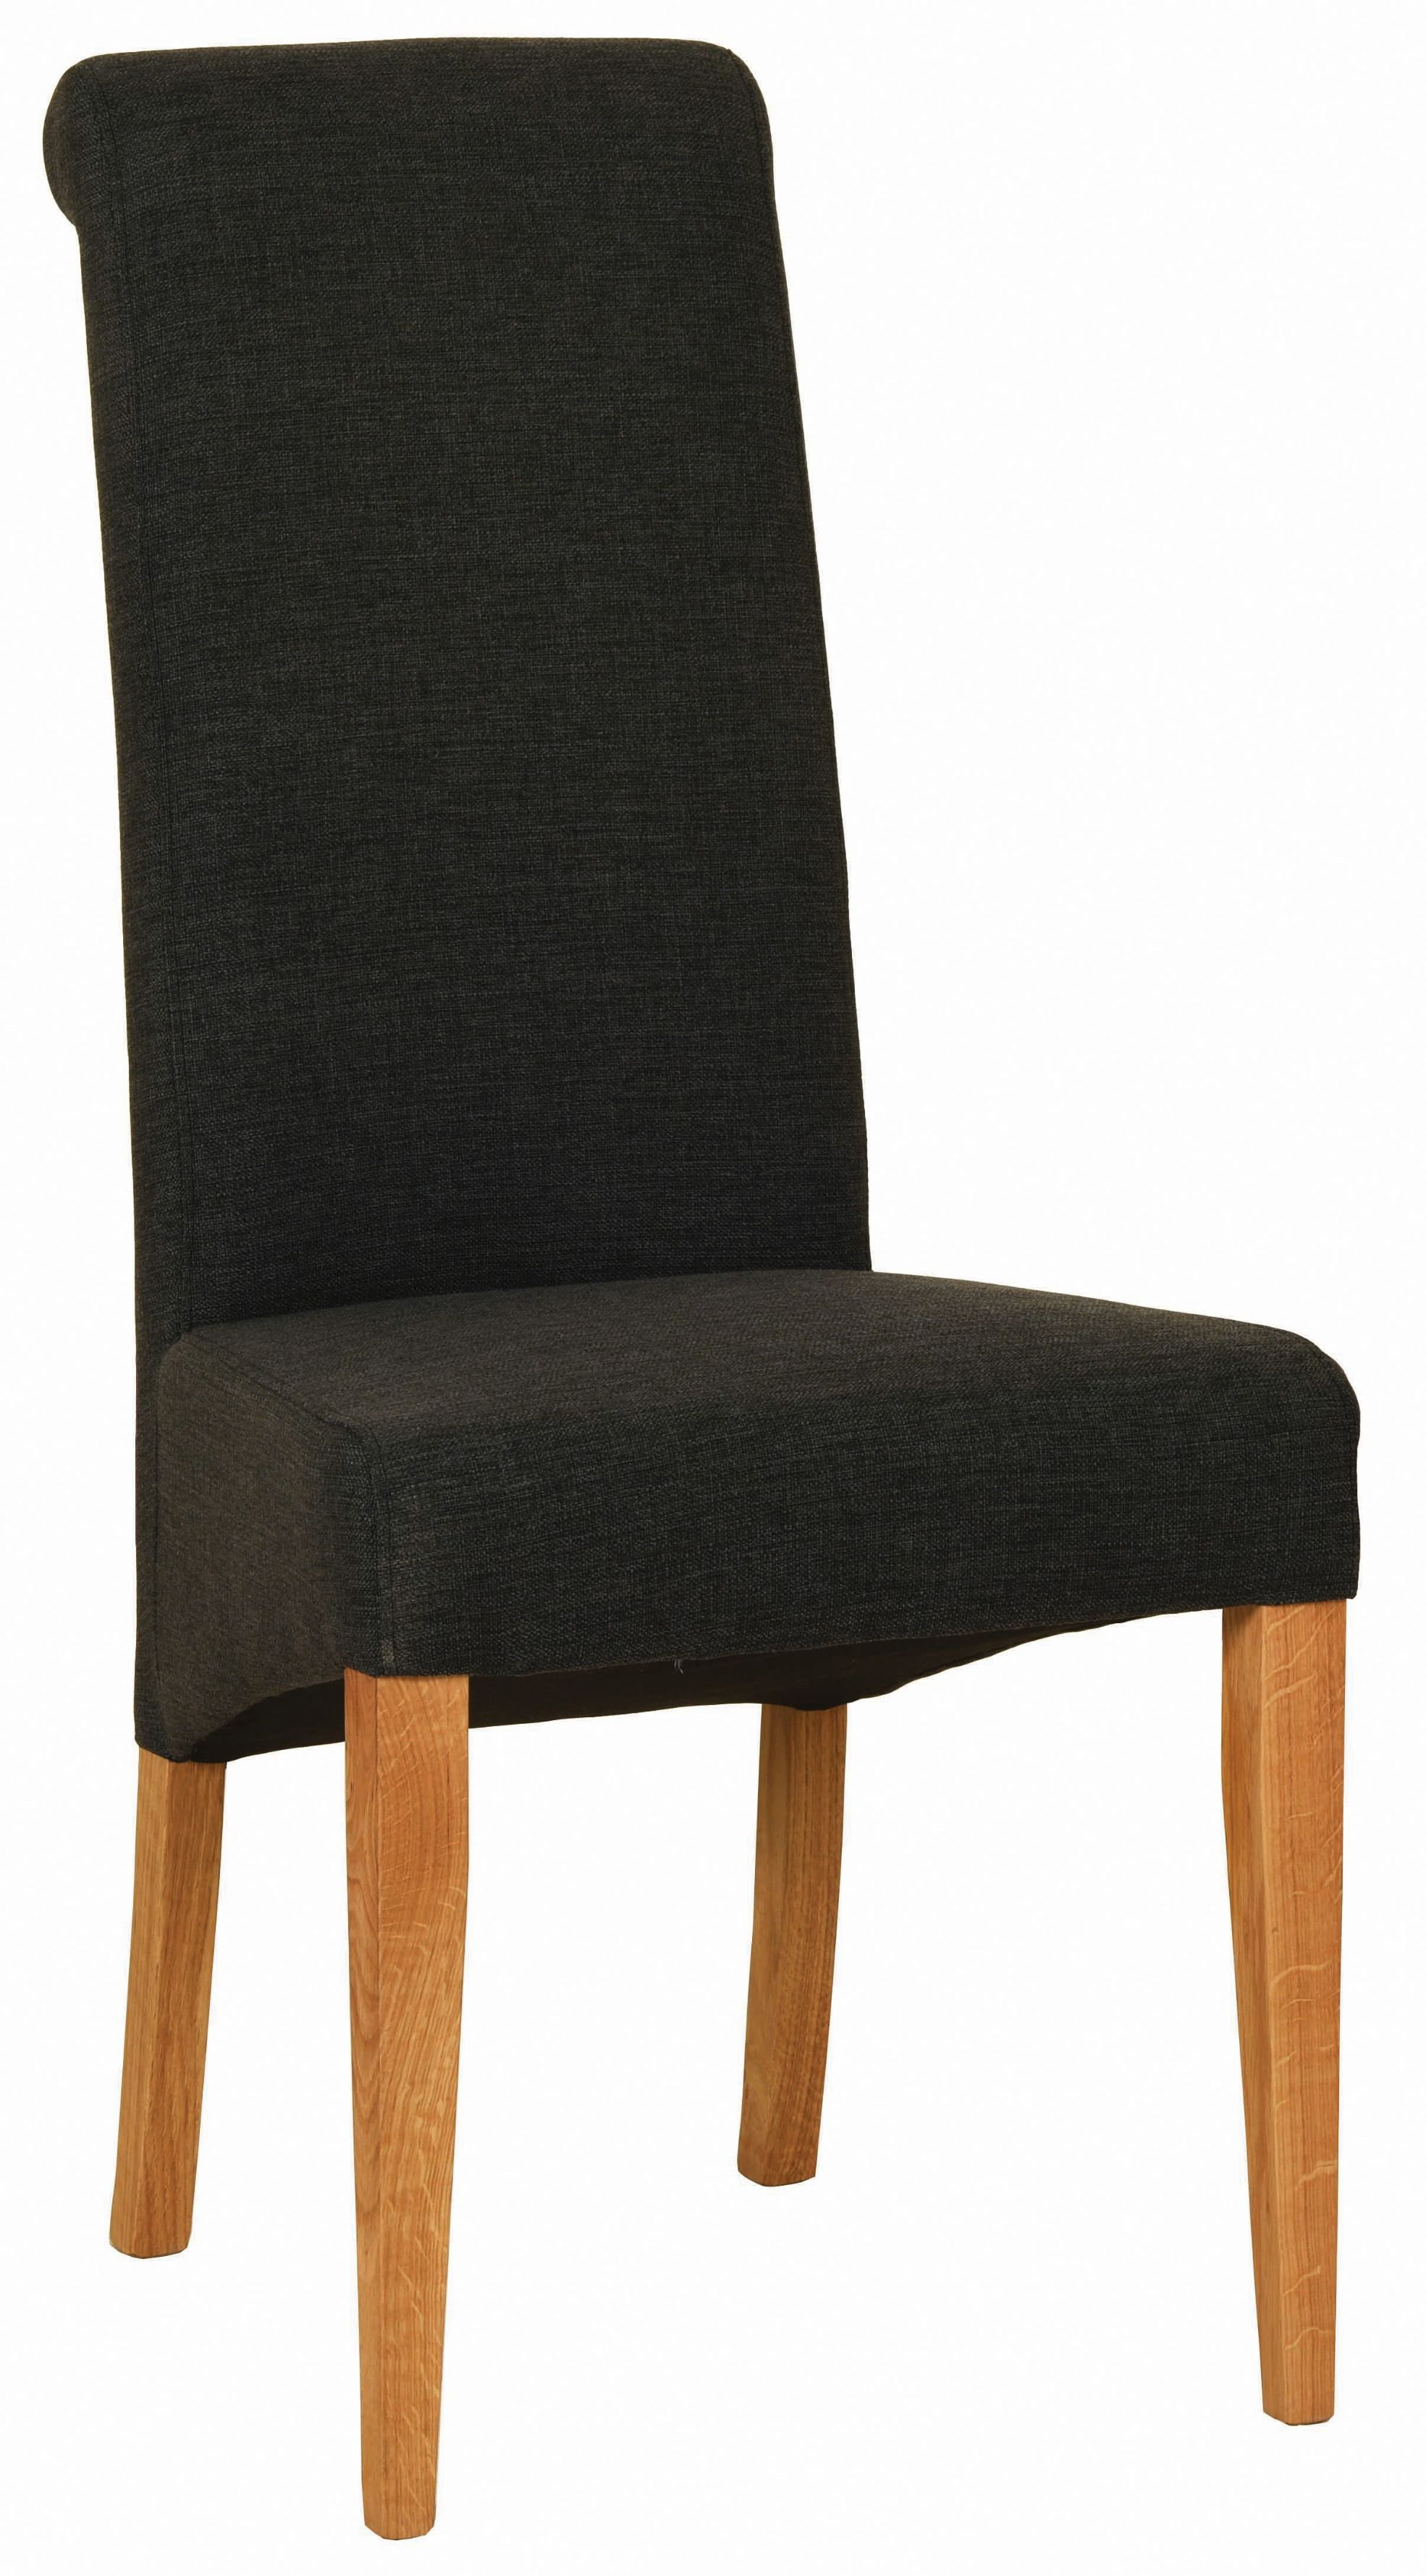 Dorchester Oak Fabric Dining Chair Charcoal